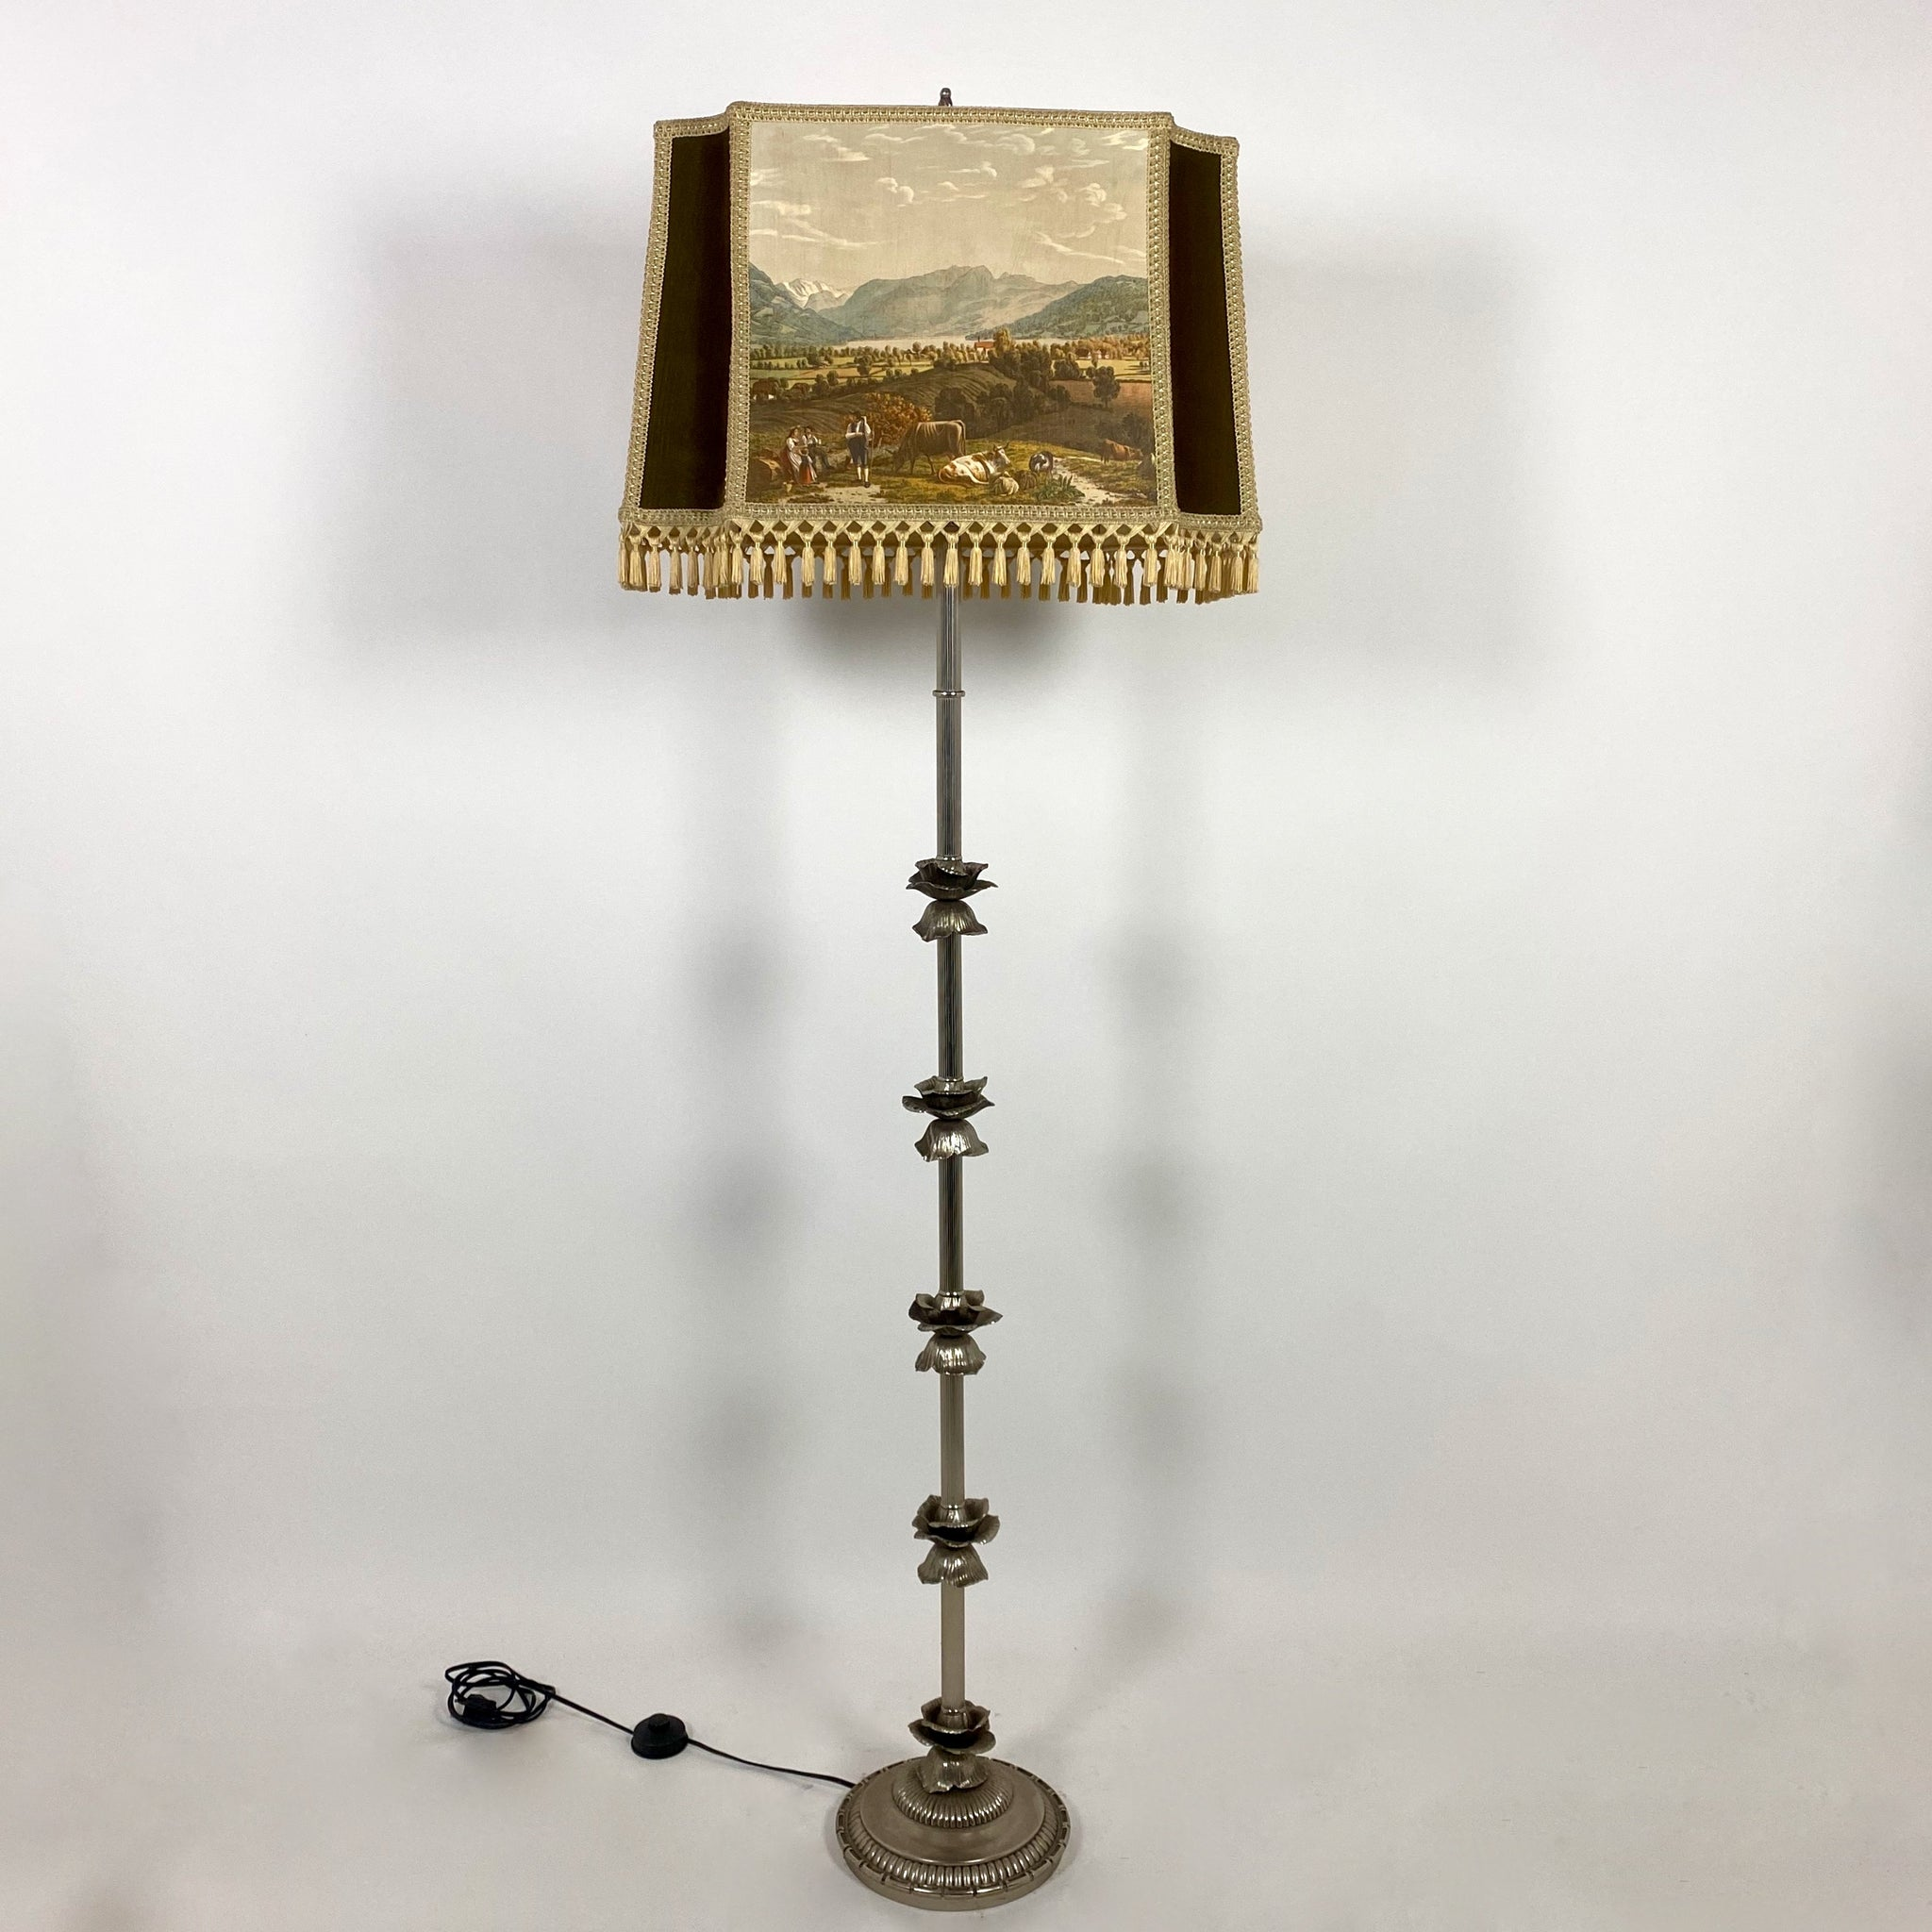 Italian mid century lamp with original decorative shade.